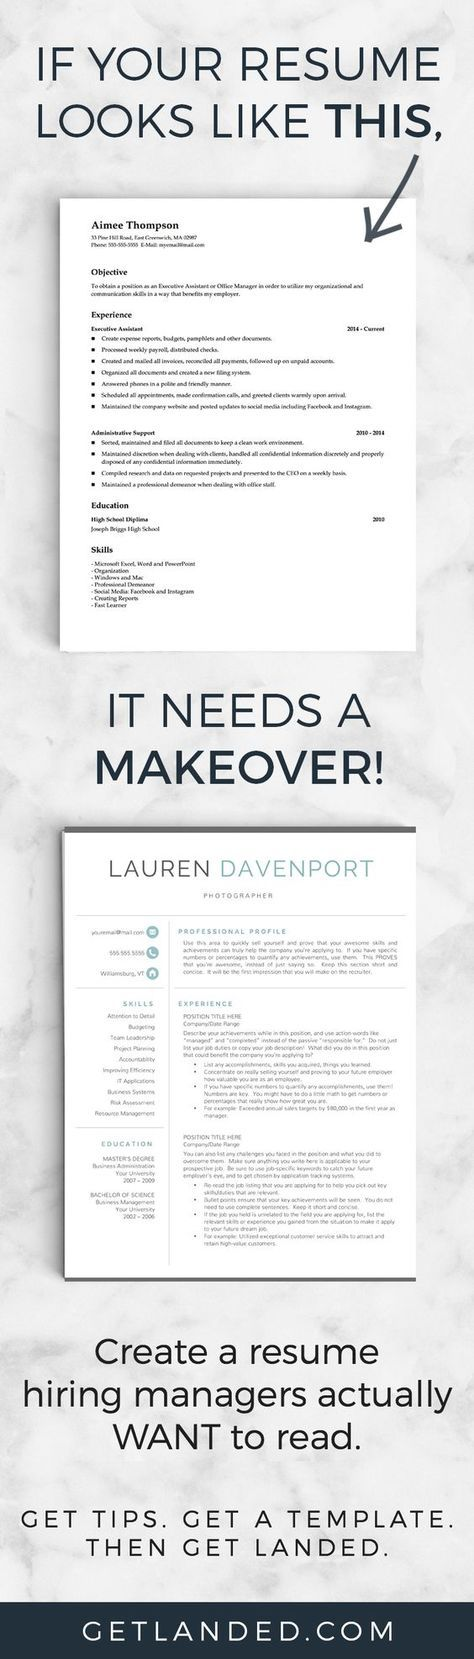 8 best Job related images on Pinterest Interview, Cover letters - what a professional resume looks like